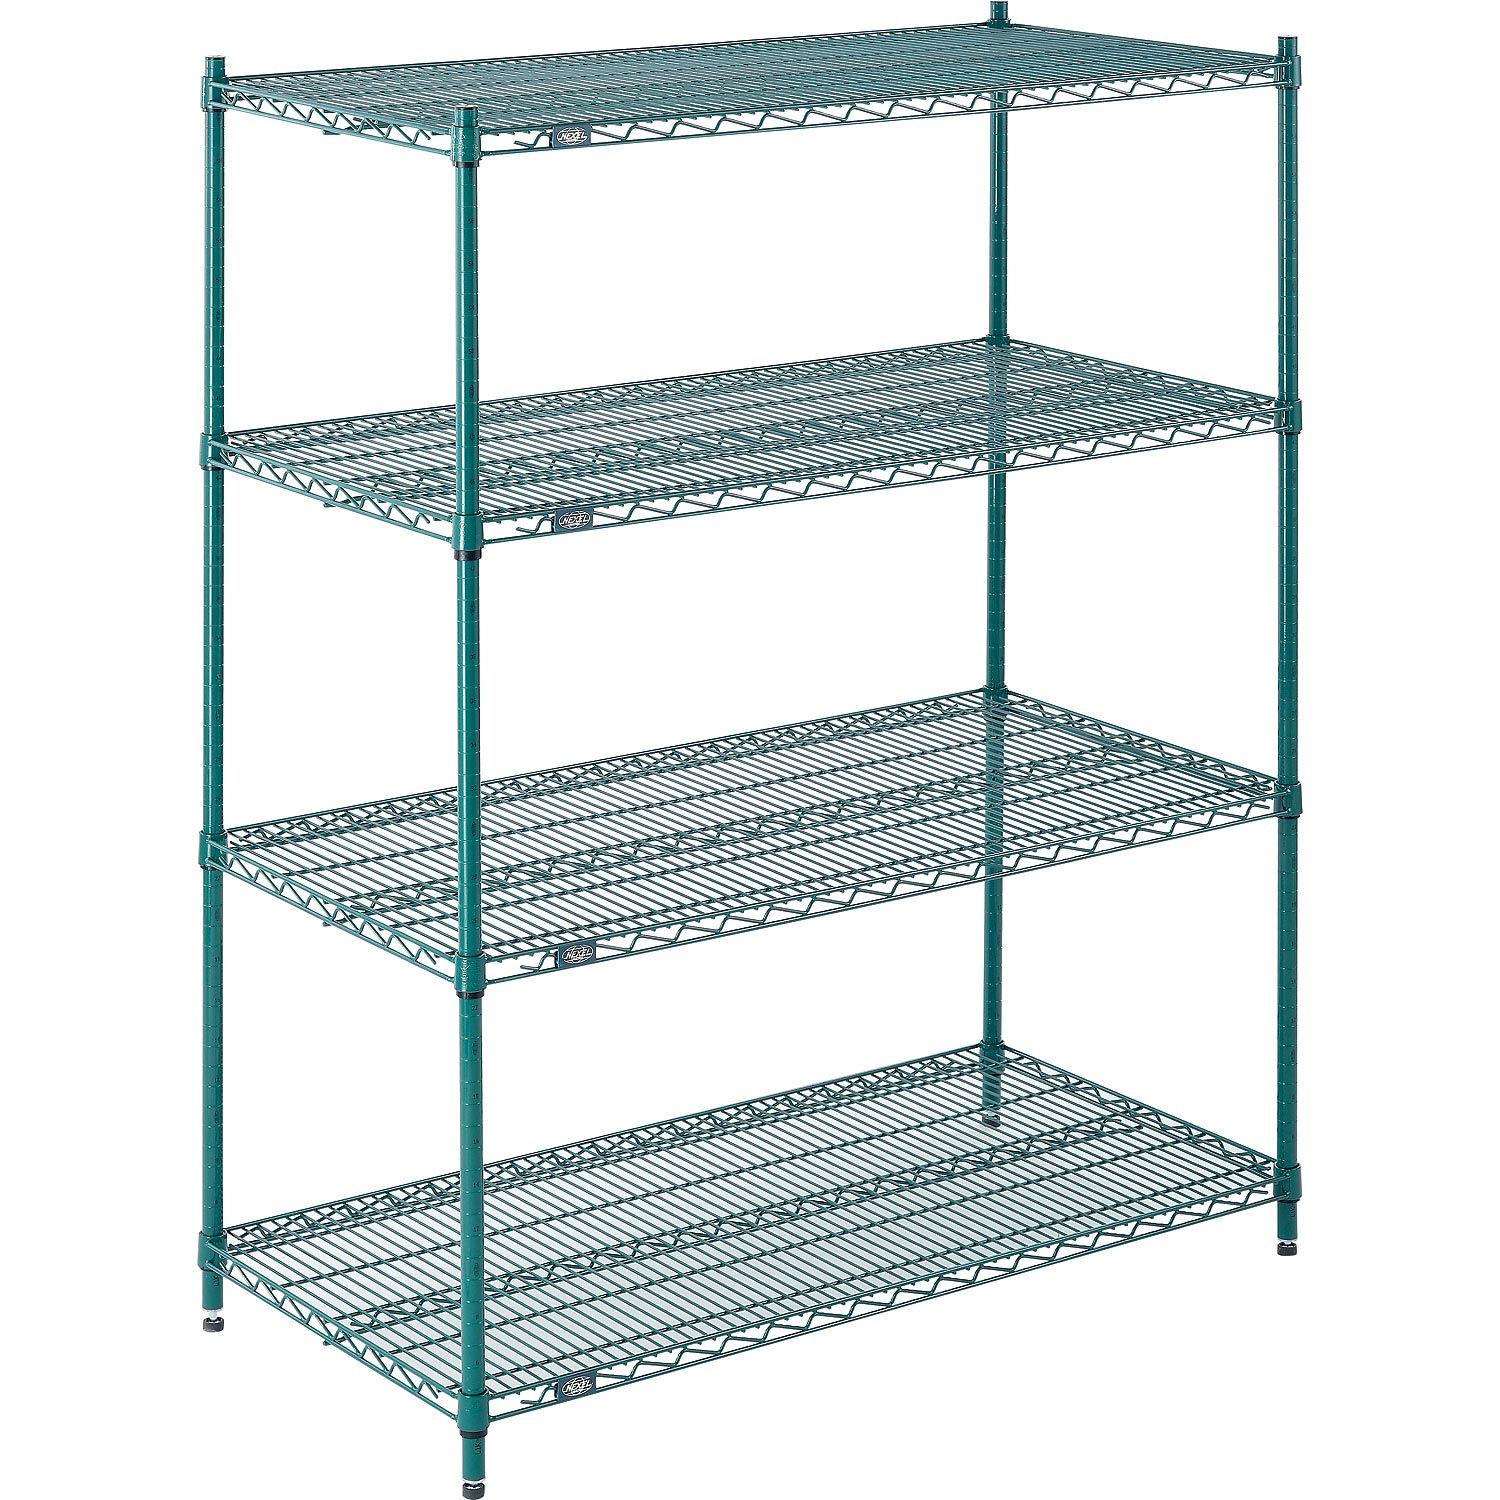 Details About Nexel Wire Shelving Green Epoxy 60 W X 24 D X 86 H Lot Of 1